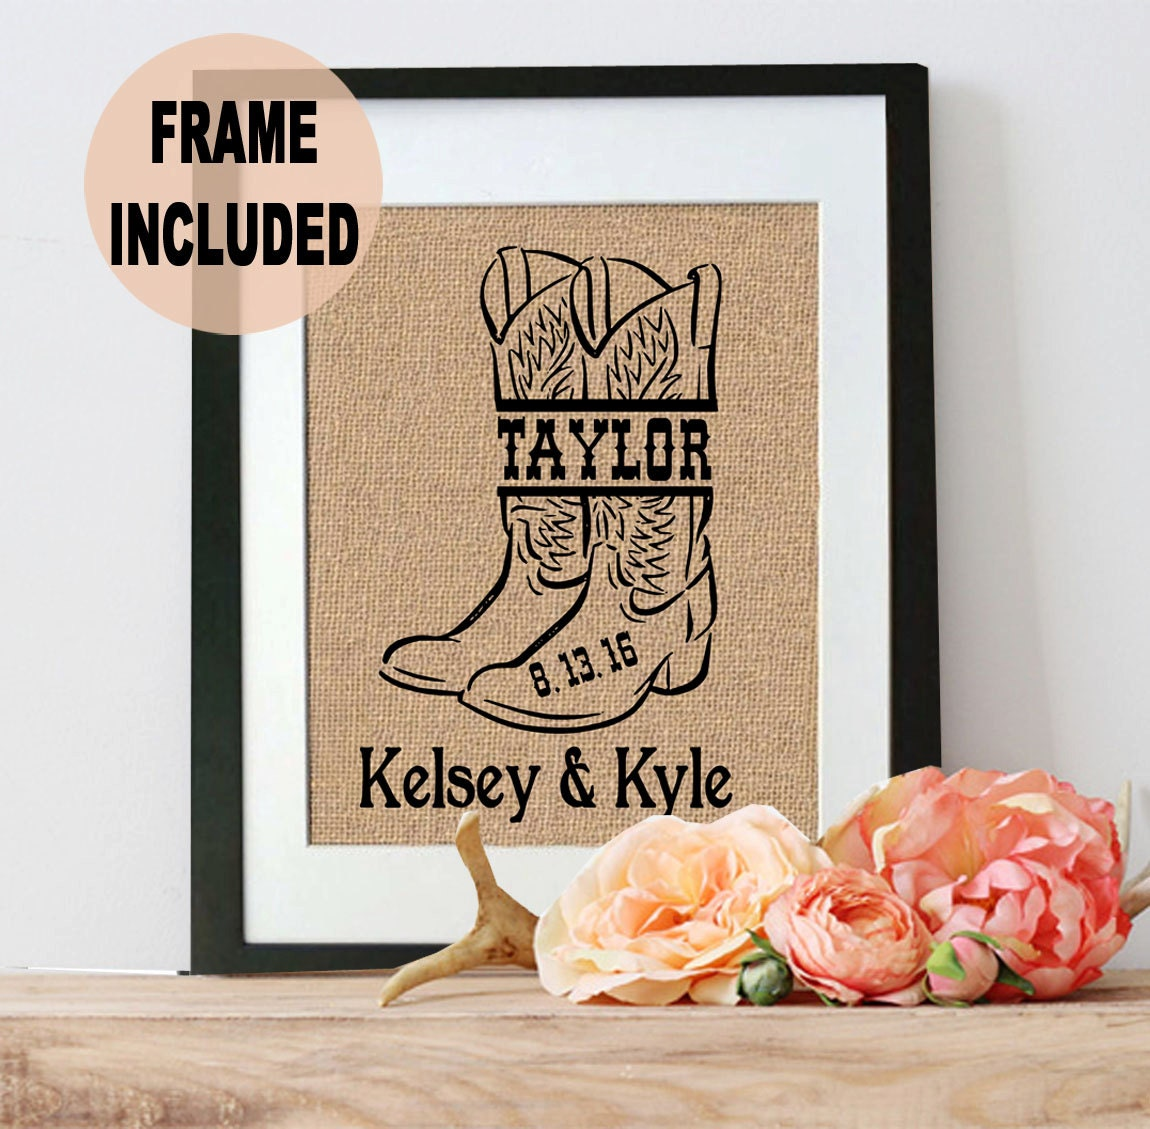 Country Wedding Gift Ideas: Country Wedding Decor Personalized Burlap Sign Country